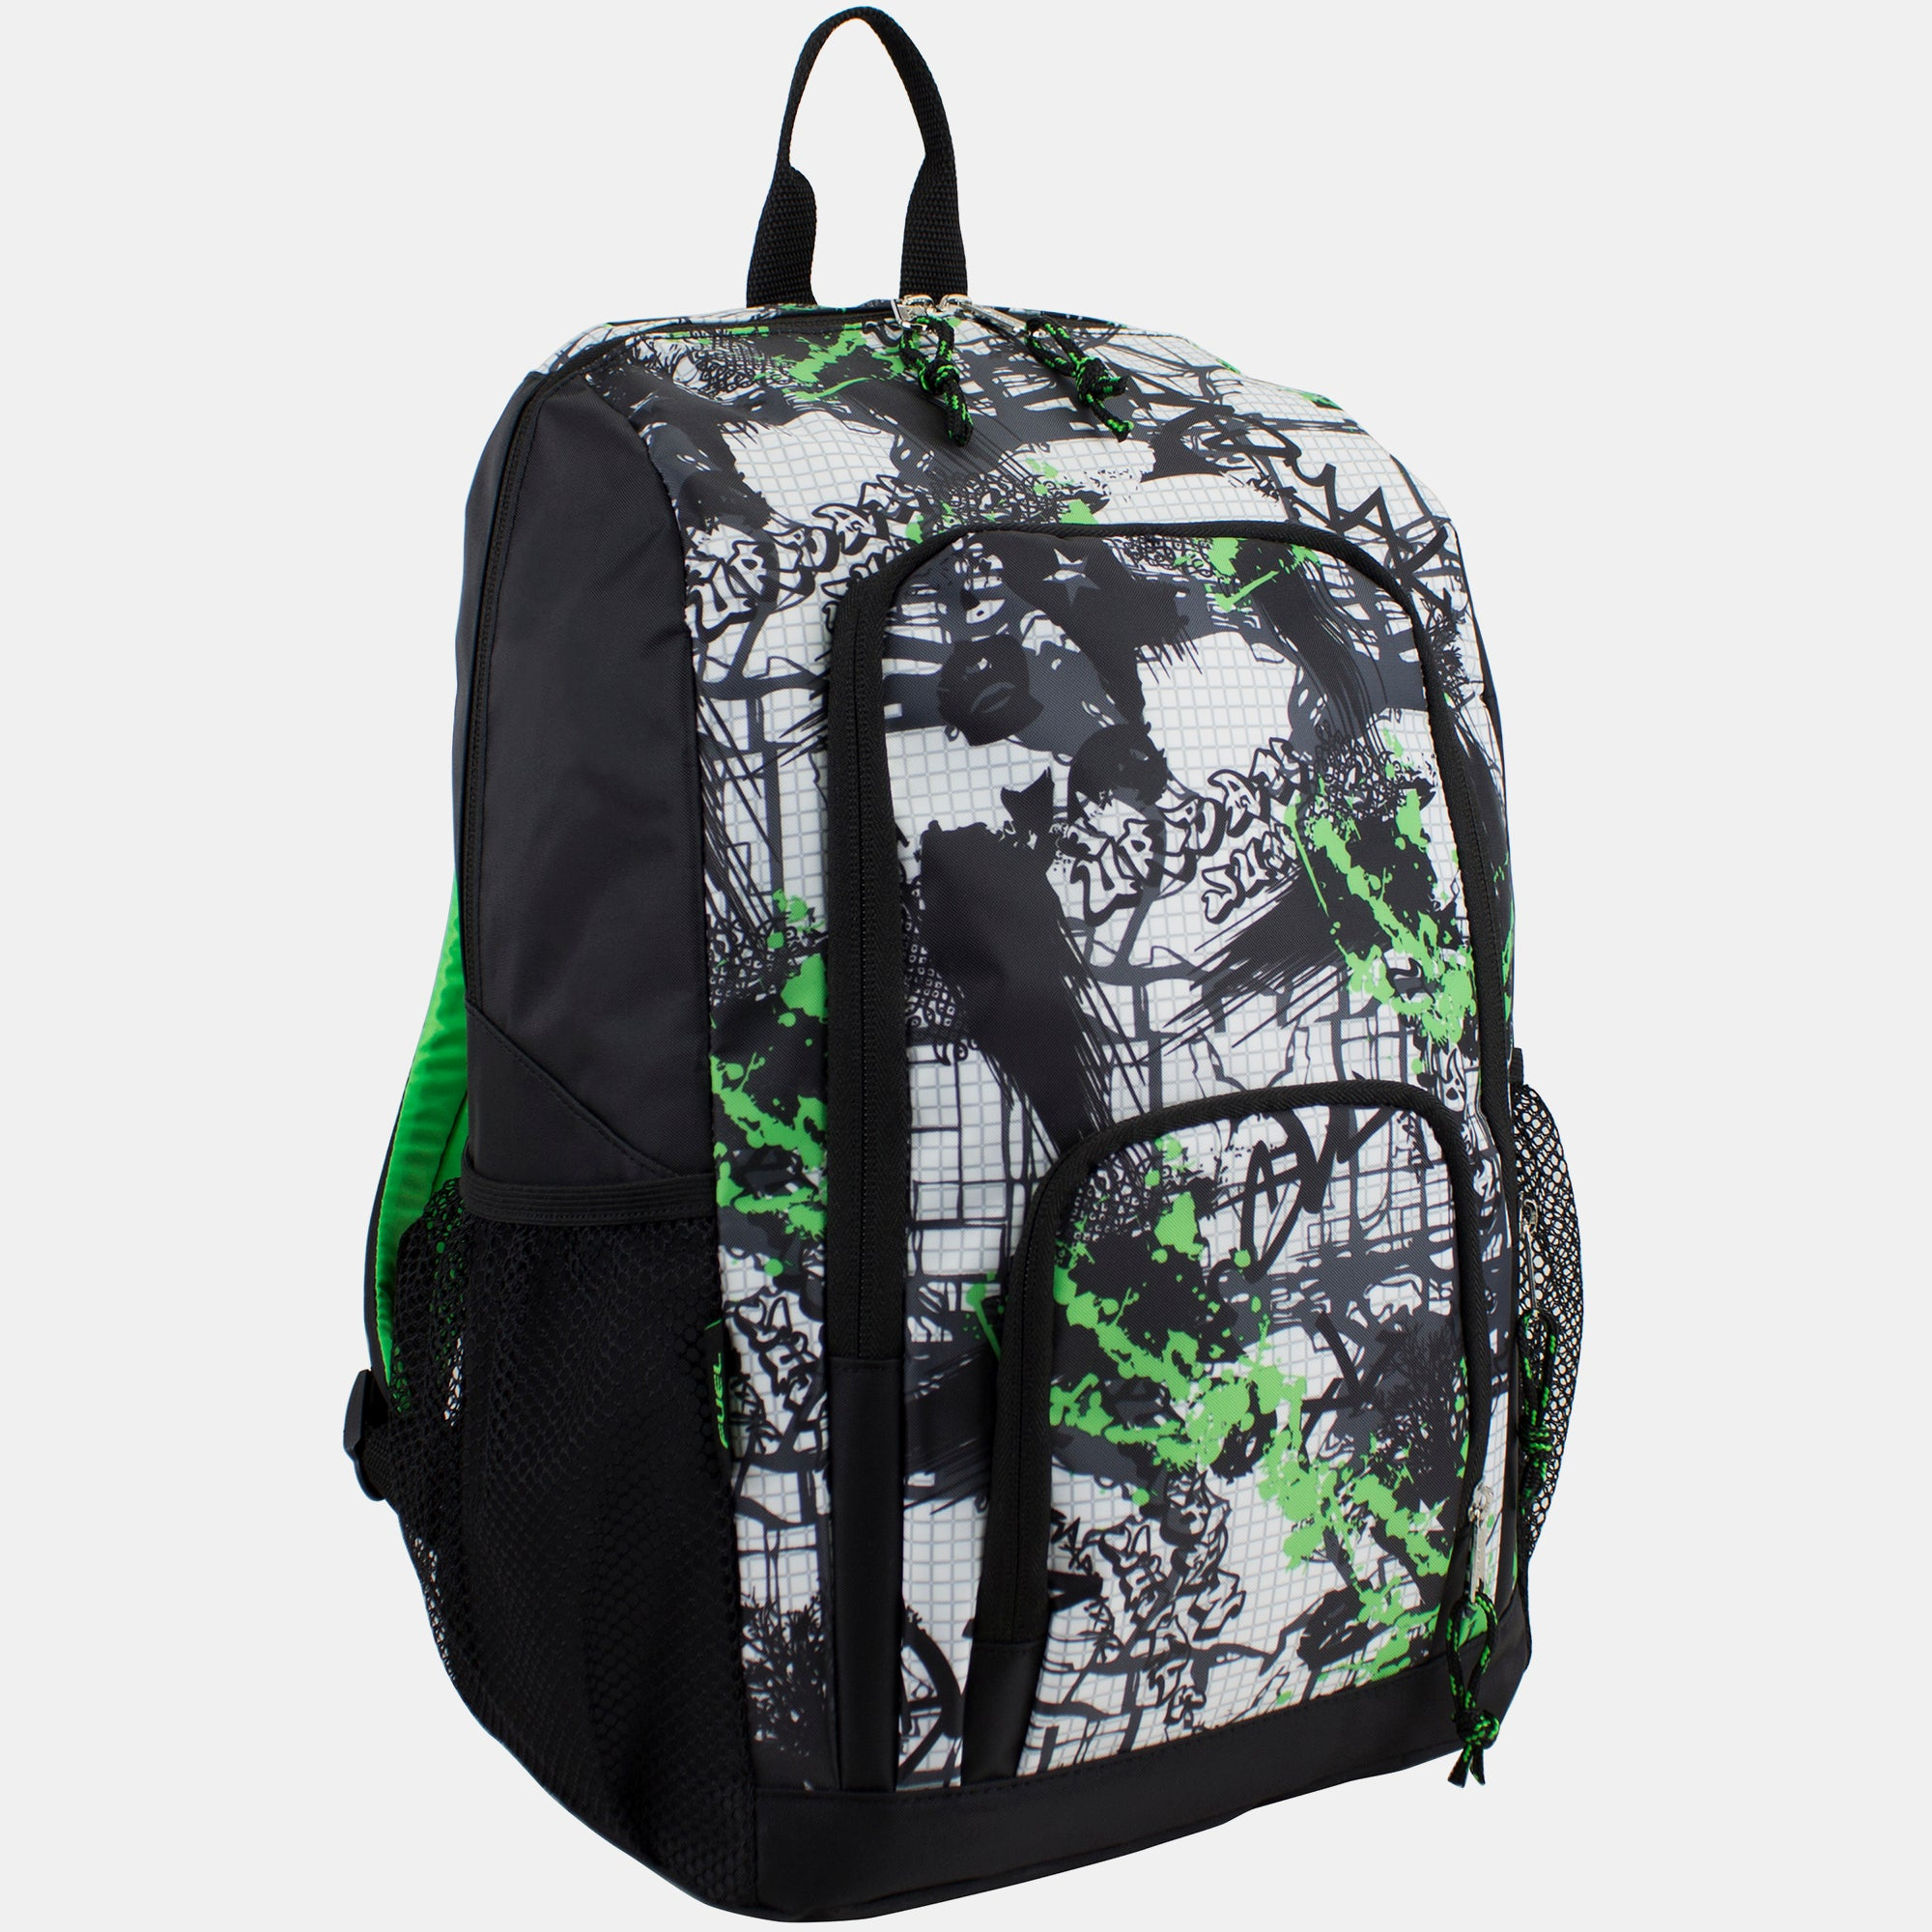 Fuel Double Pocket School Backpack